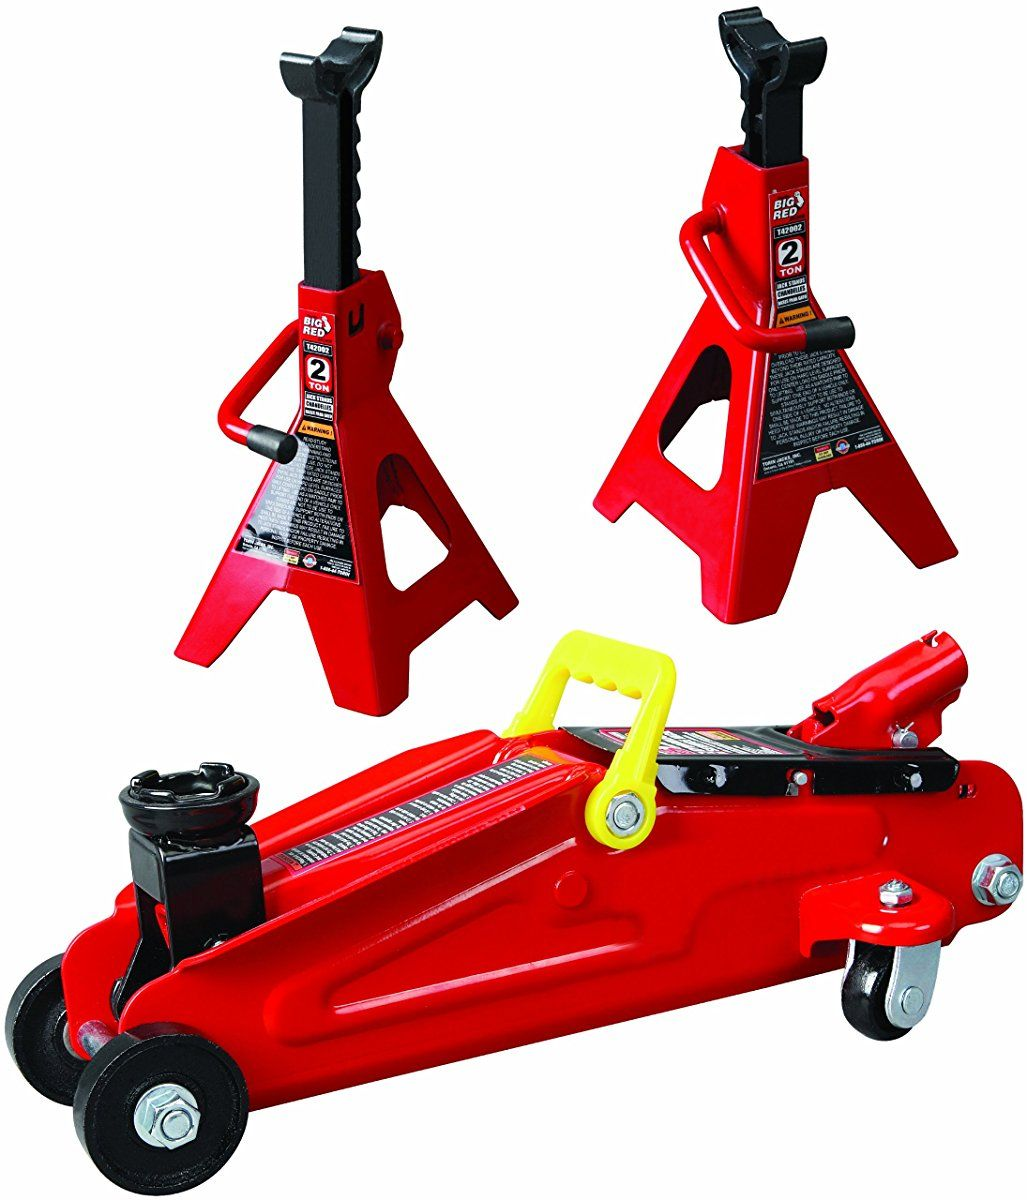 Torin Big Red Hydraulic Trolley Floor Jack Combo With 2 Jack Stands 2 Ton Capacity Jack Stands Floor Jack Car Jack